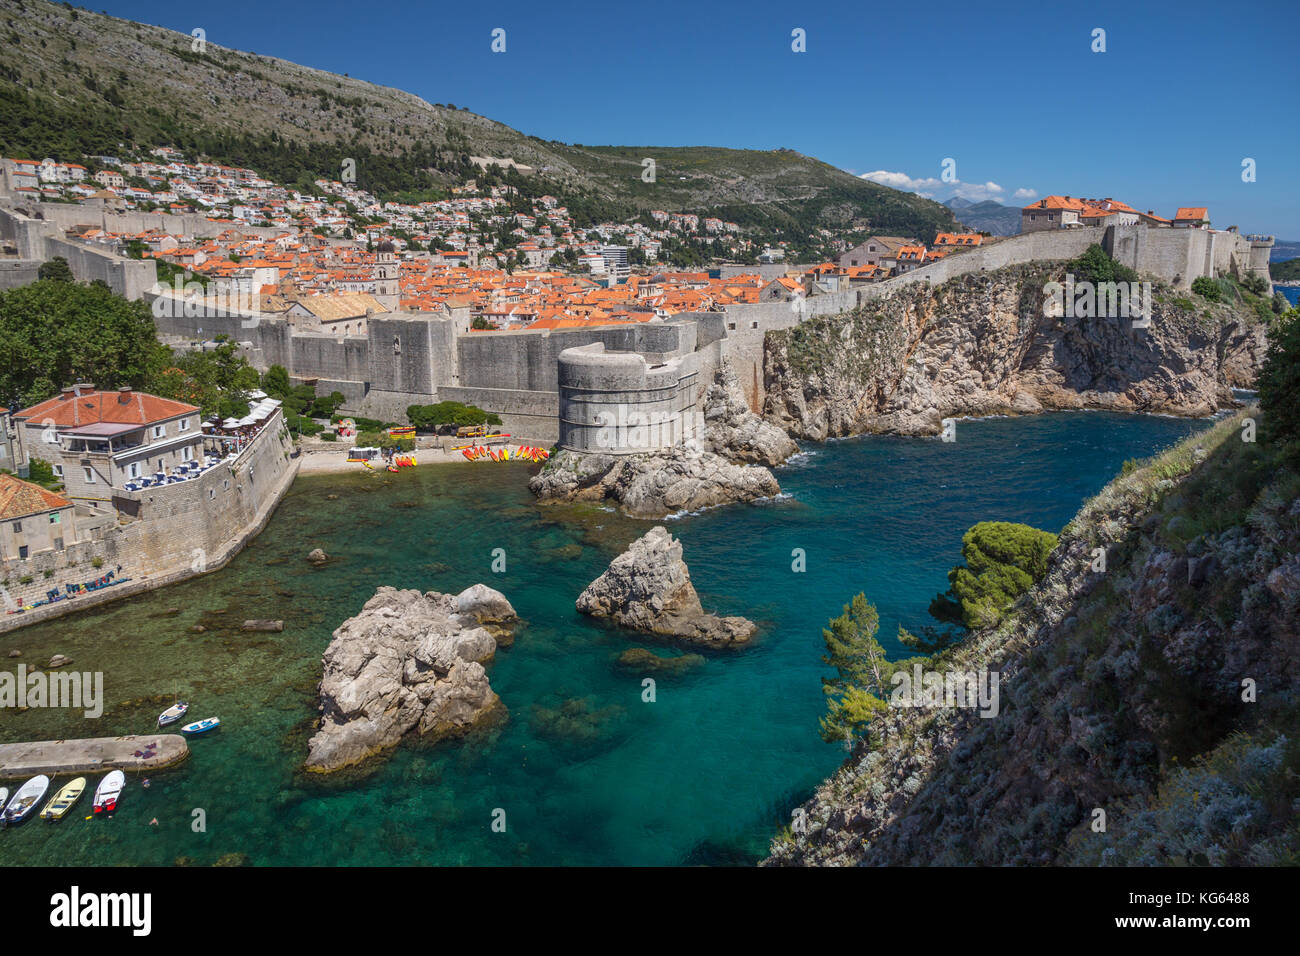 Old Town of Dubrovnik sitting behind its strong defensive walls and Mt Srd rising in the background.  Image taken - Stock Image